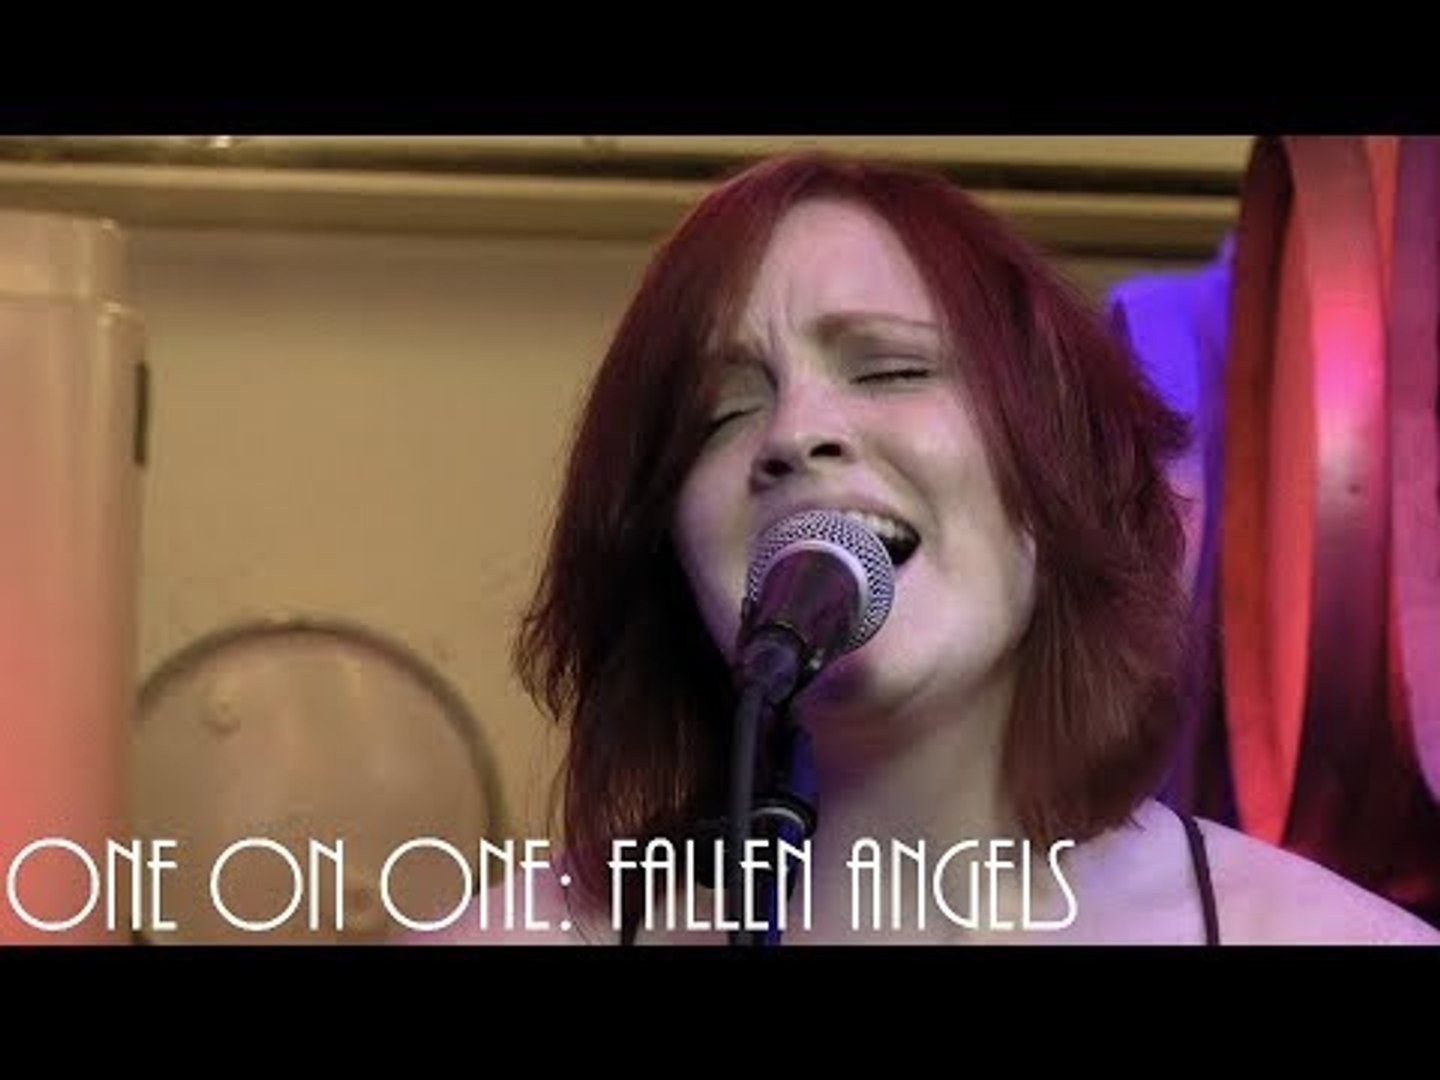 Cellar Sessions: Plastic Angels - Fallen Angels August 25th, 2018 City Winery New York